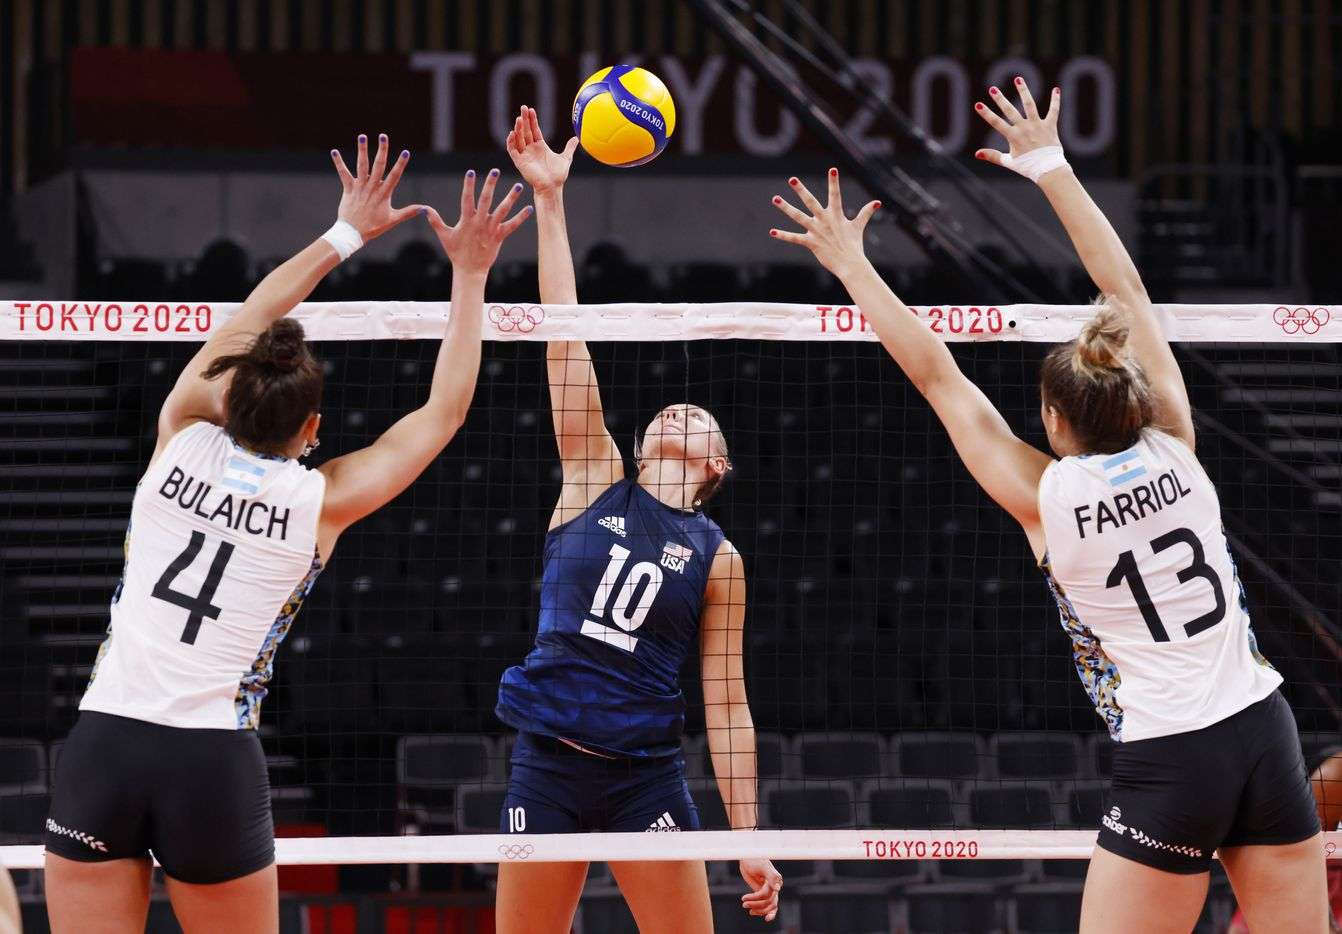 USA's Jordan Larson (10) hits a ball in between Argentina's Simian Daniela Bulaich (4) and Bianca Farriol (13) in a women's volleyball game during the postponed 2020 Tokyo Olympics at Ariake Arena on Sunday, July 25, 2021, in Tokyo, Japan. USA defeated Argentina 3-0 (25-20, 25-19, 25-20). (Vernon Bryant/The Dallas Morning News)